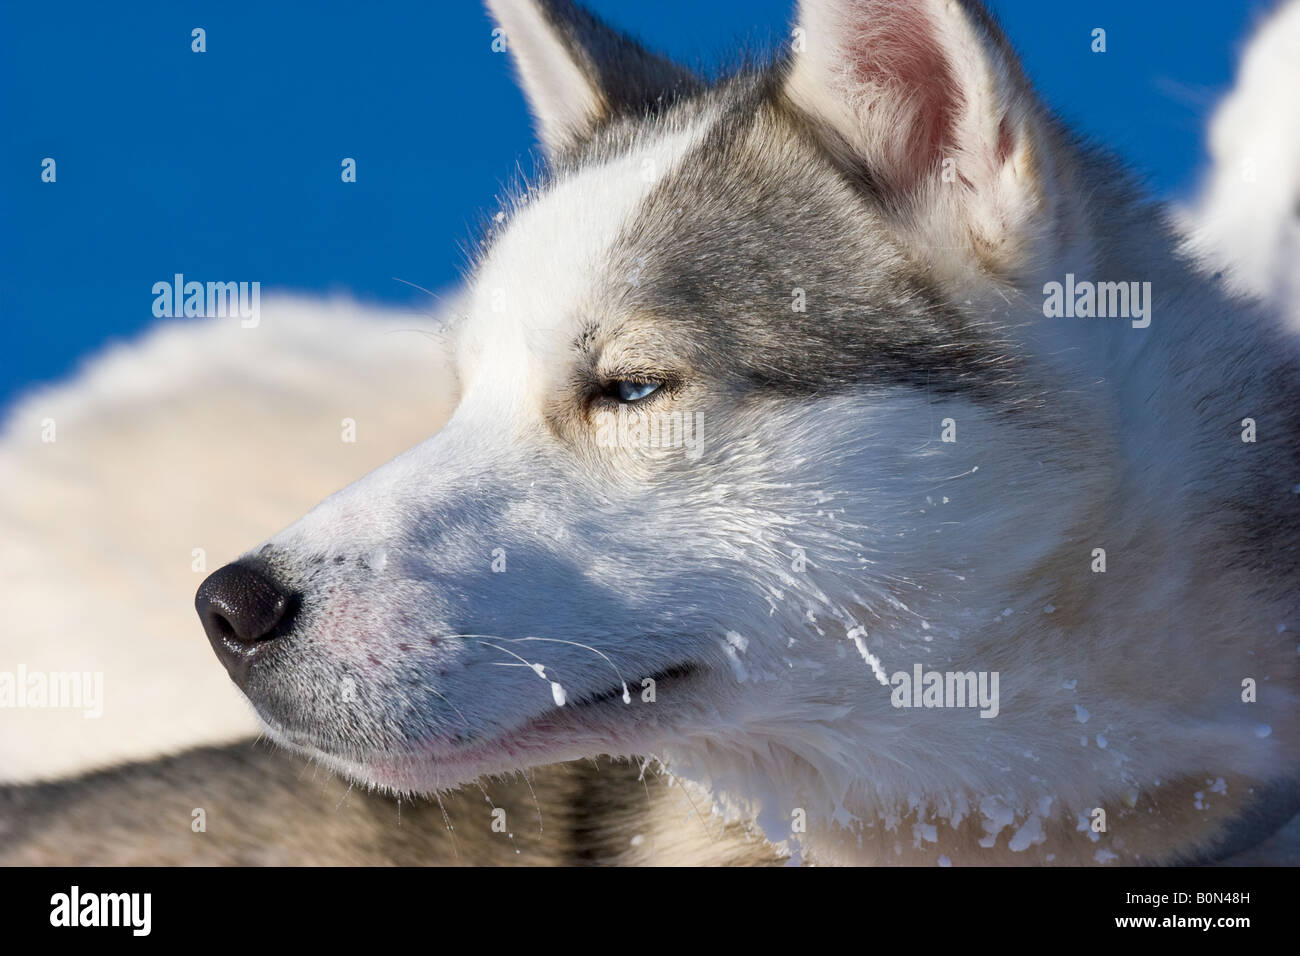 A siberian husky in winterly Lapland / northern Sweden - Stock Image